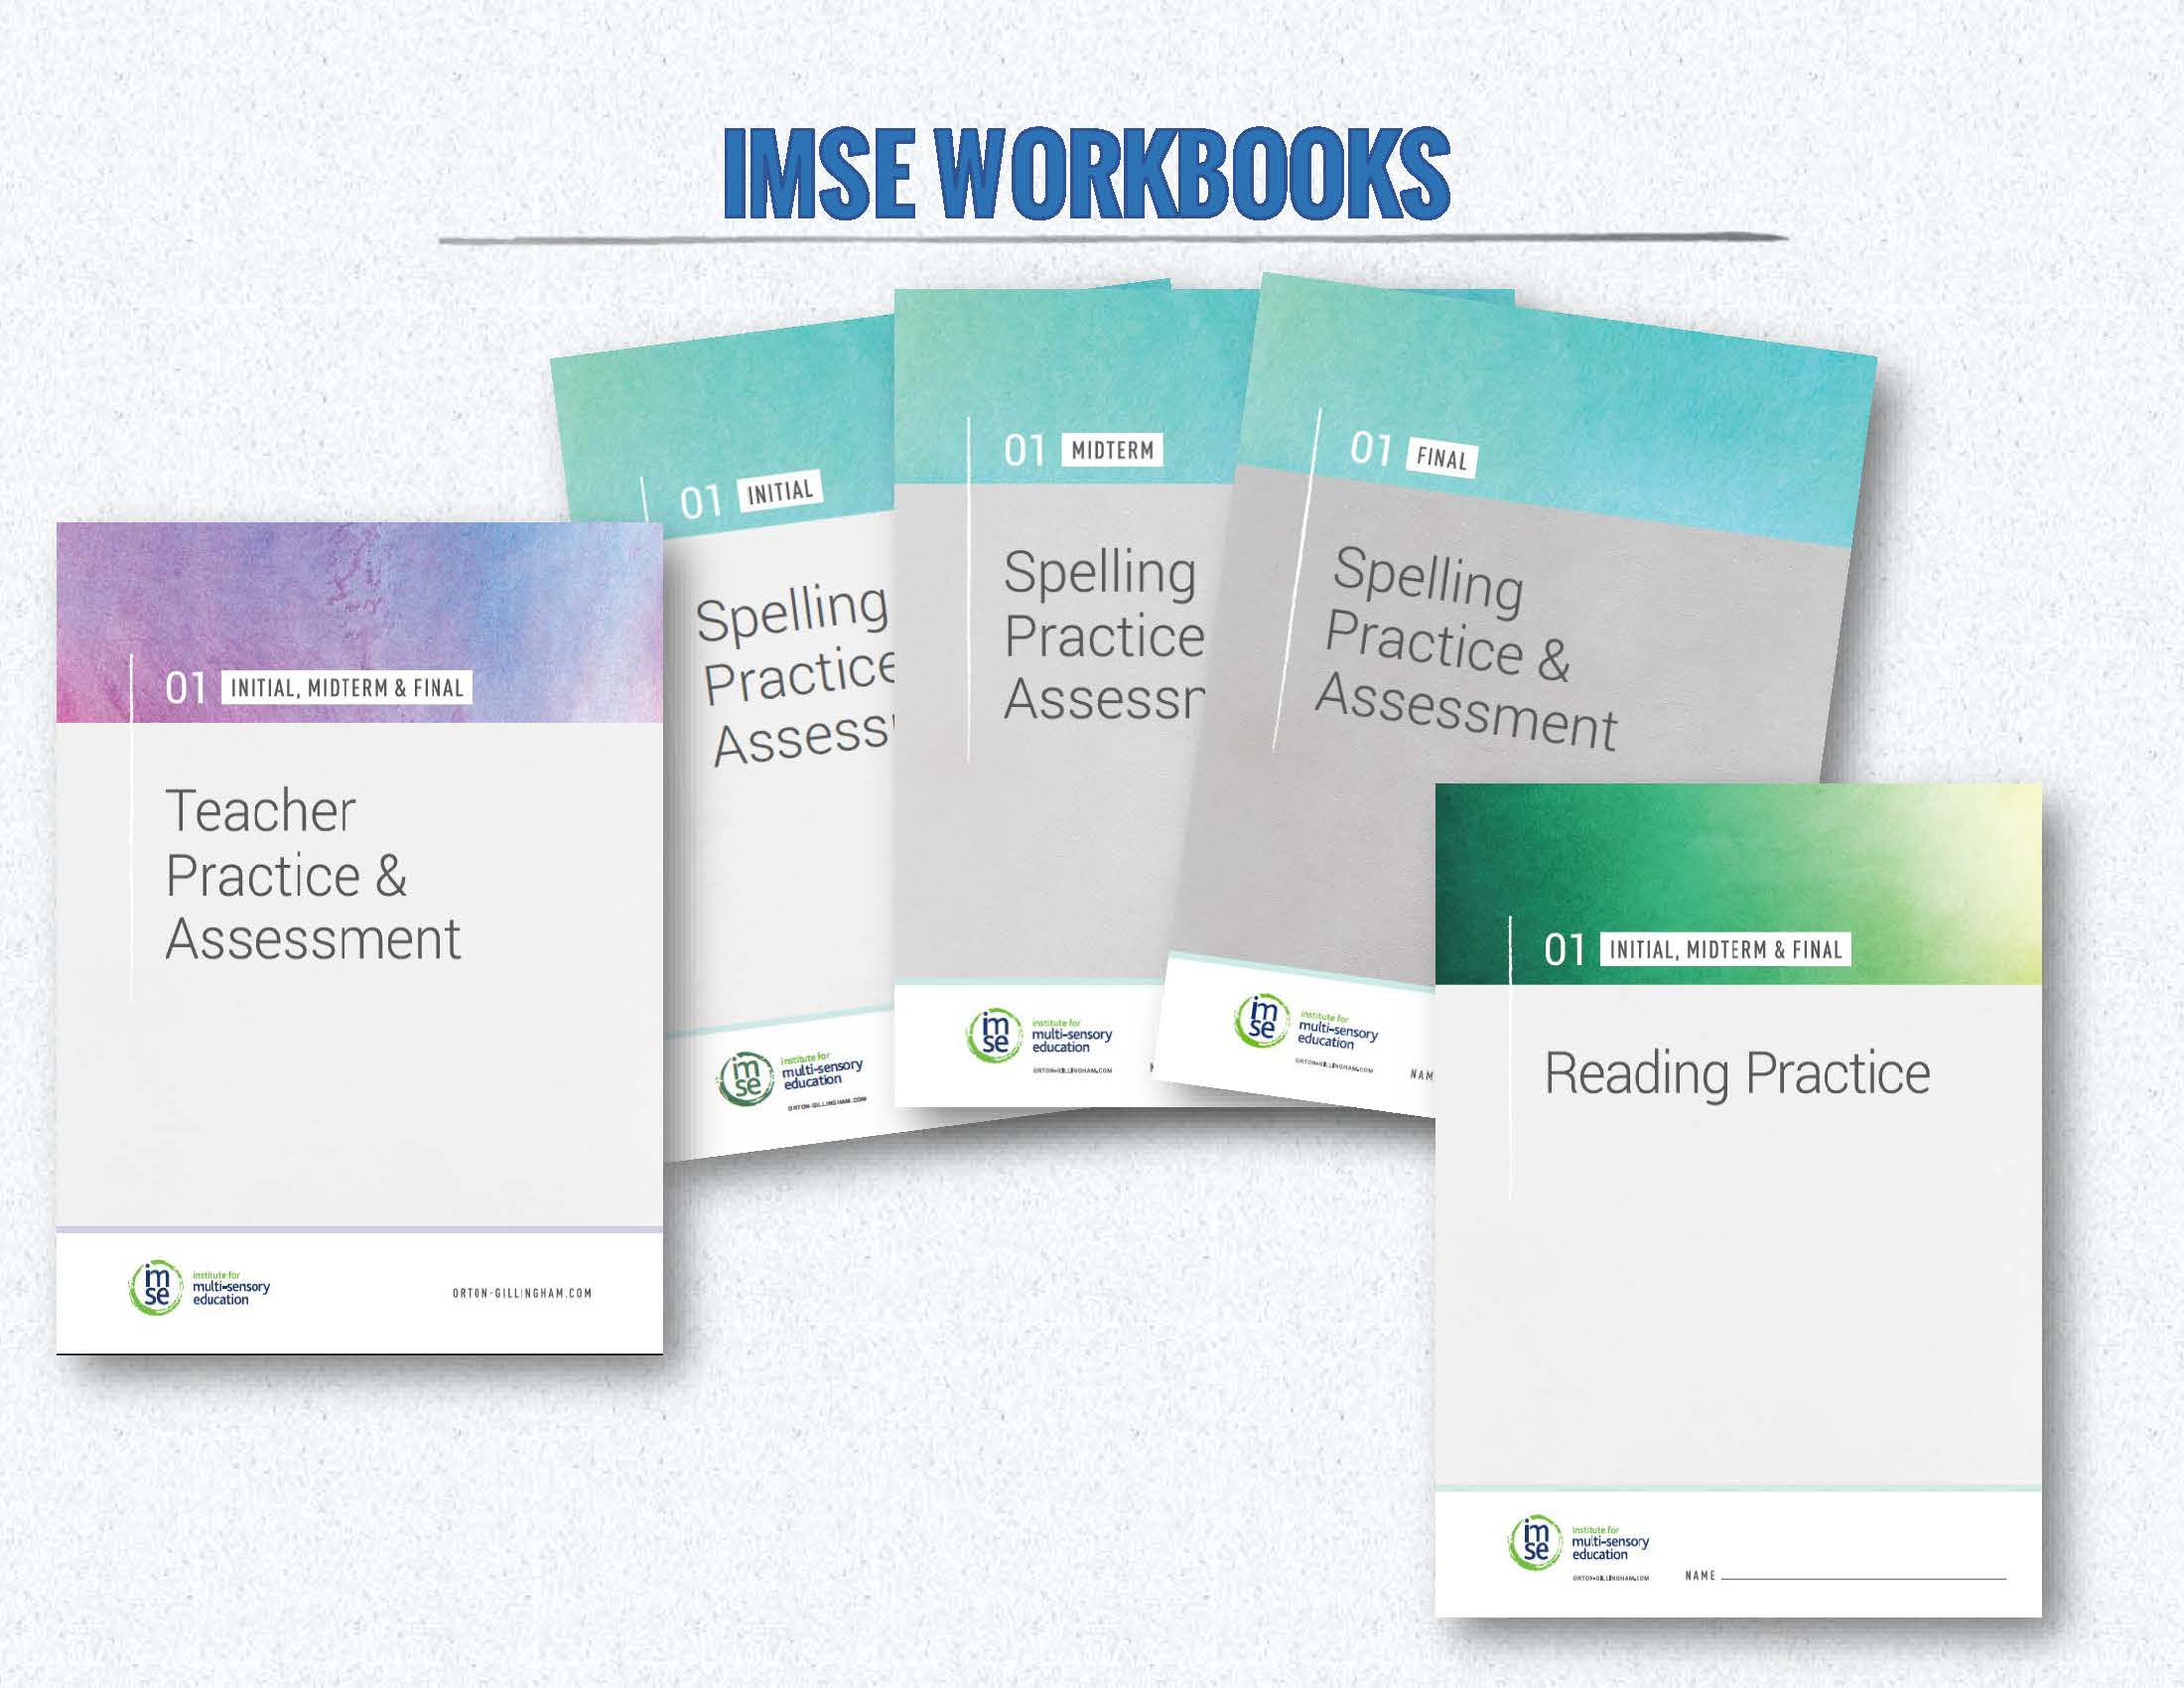 IMSE OG Level 01 Practice Books